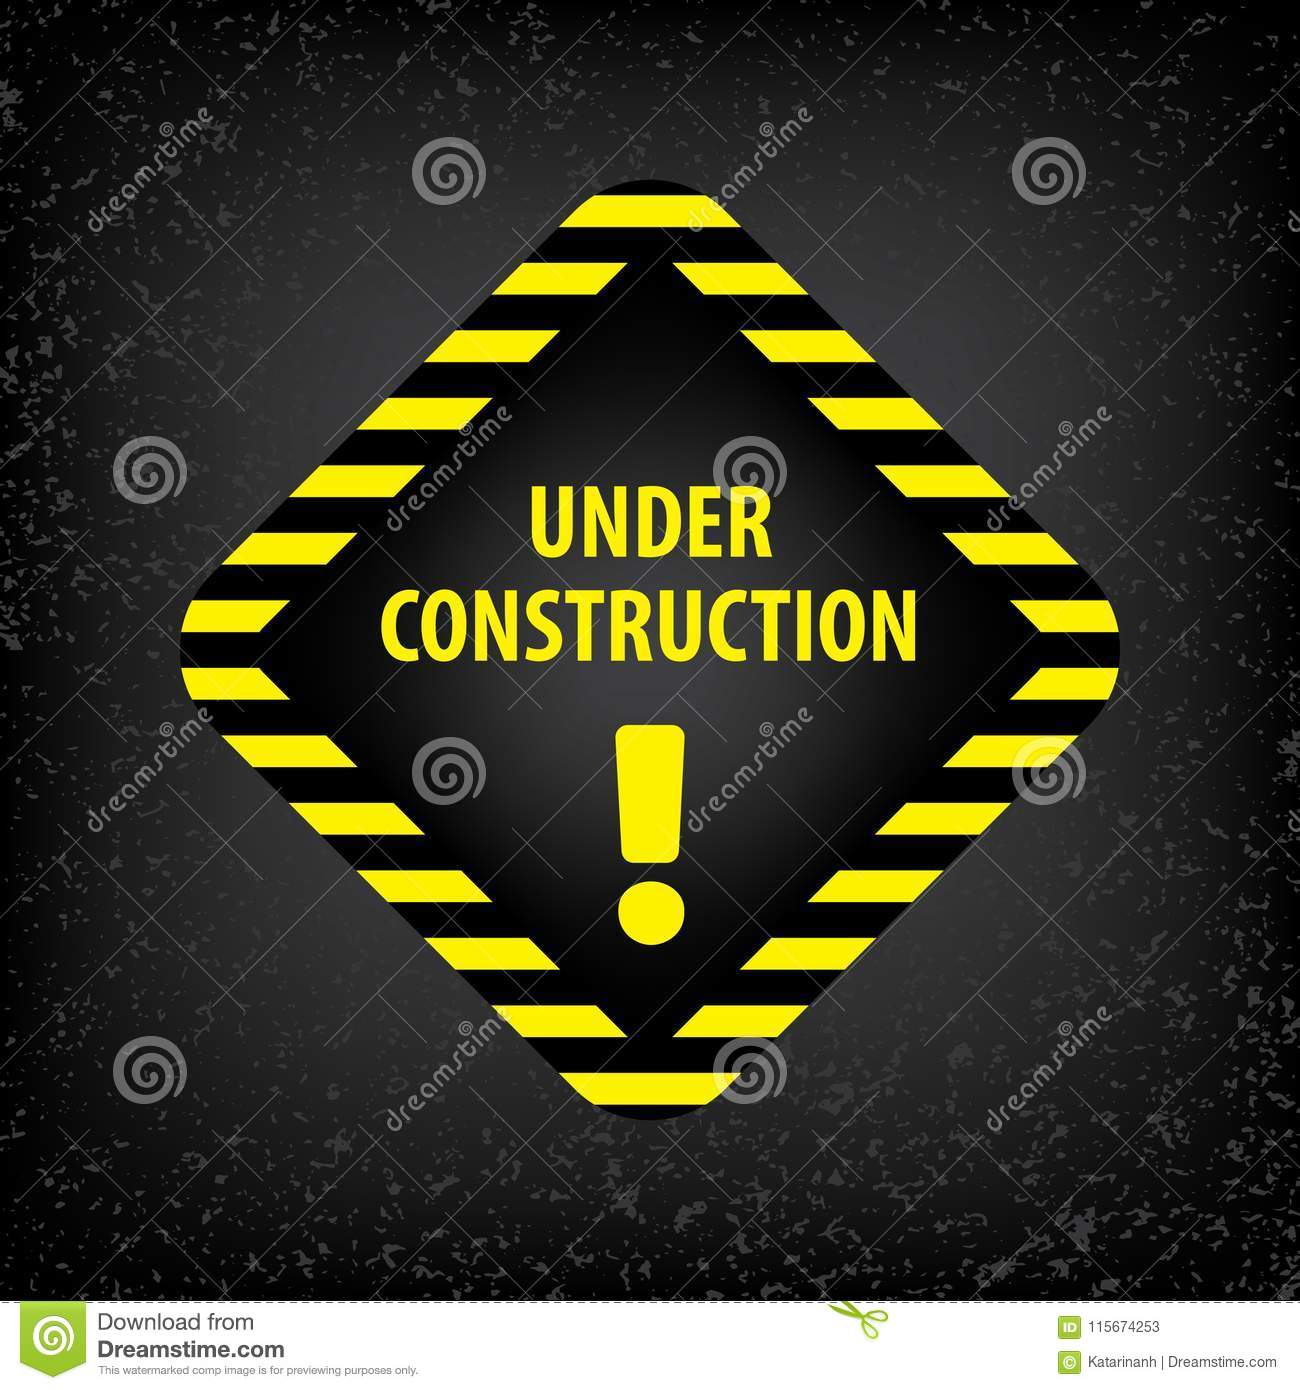 Under construction sign on gray ground texture. Vector illustration for website. Under construction rhombus with black and yellow